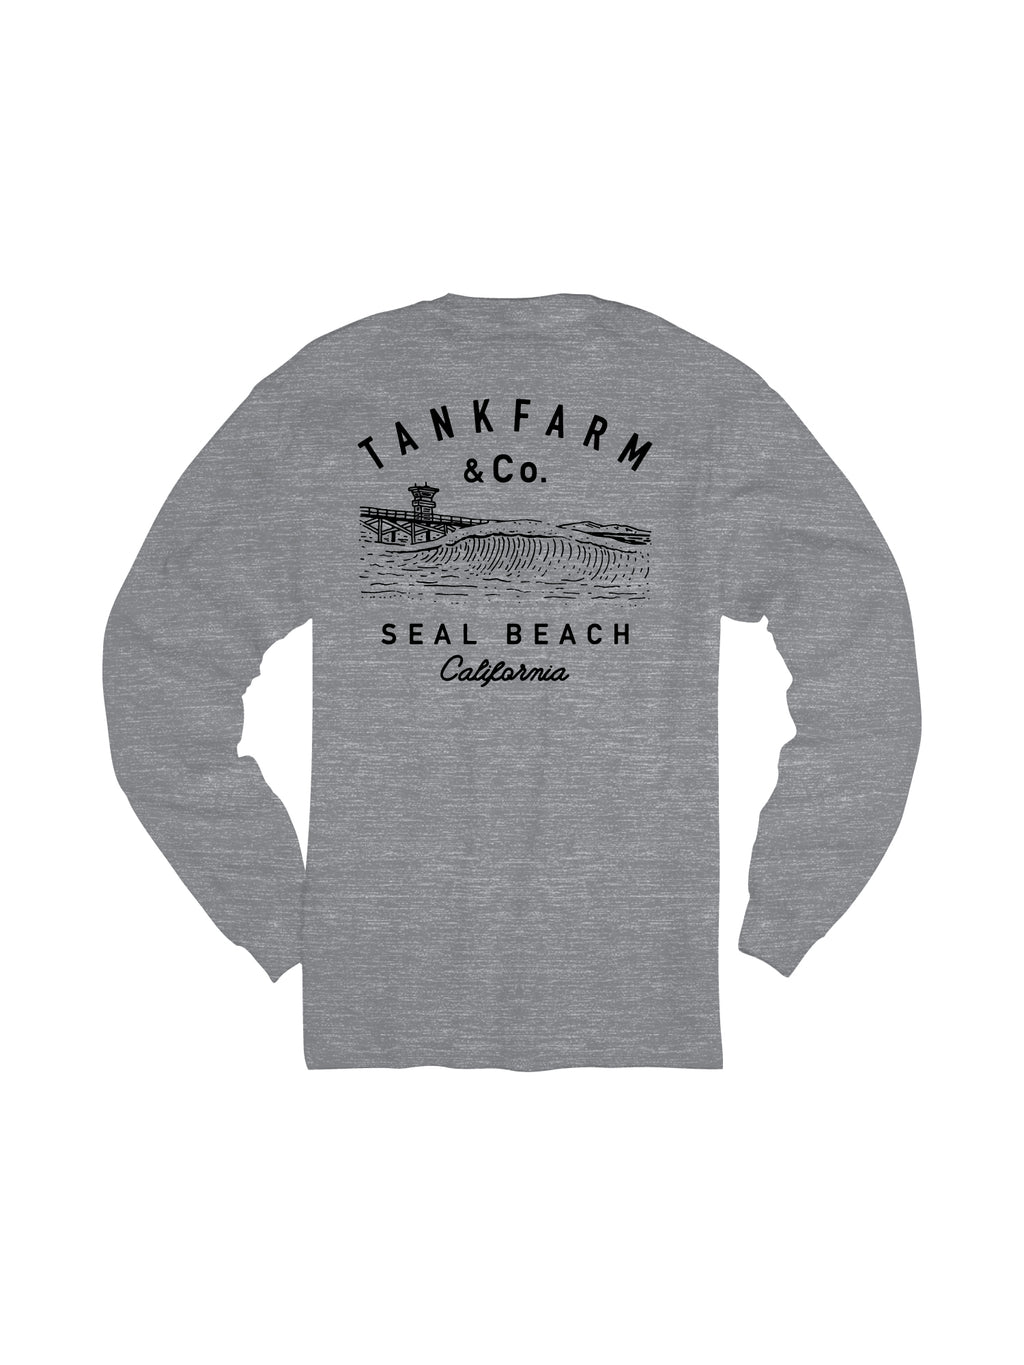 SHORE BREAK L/S - LIGHT HEATHER GRAY - Tankfarm & Co.